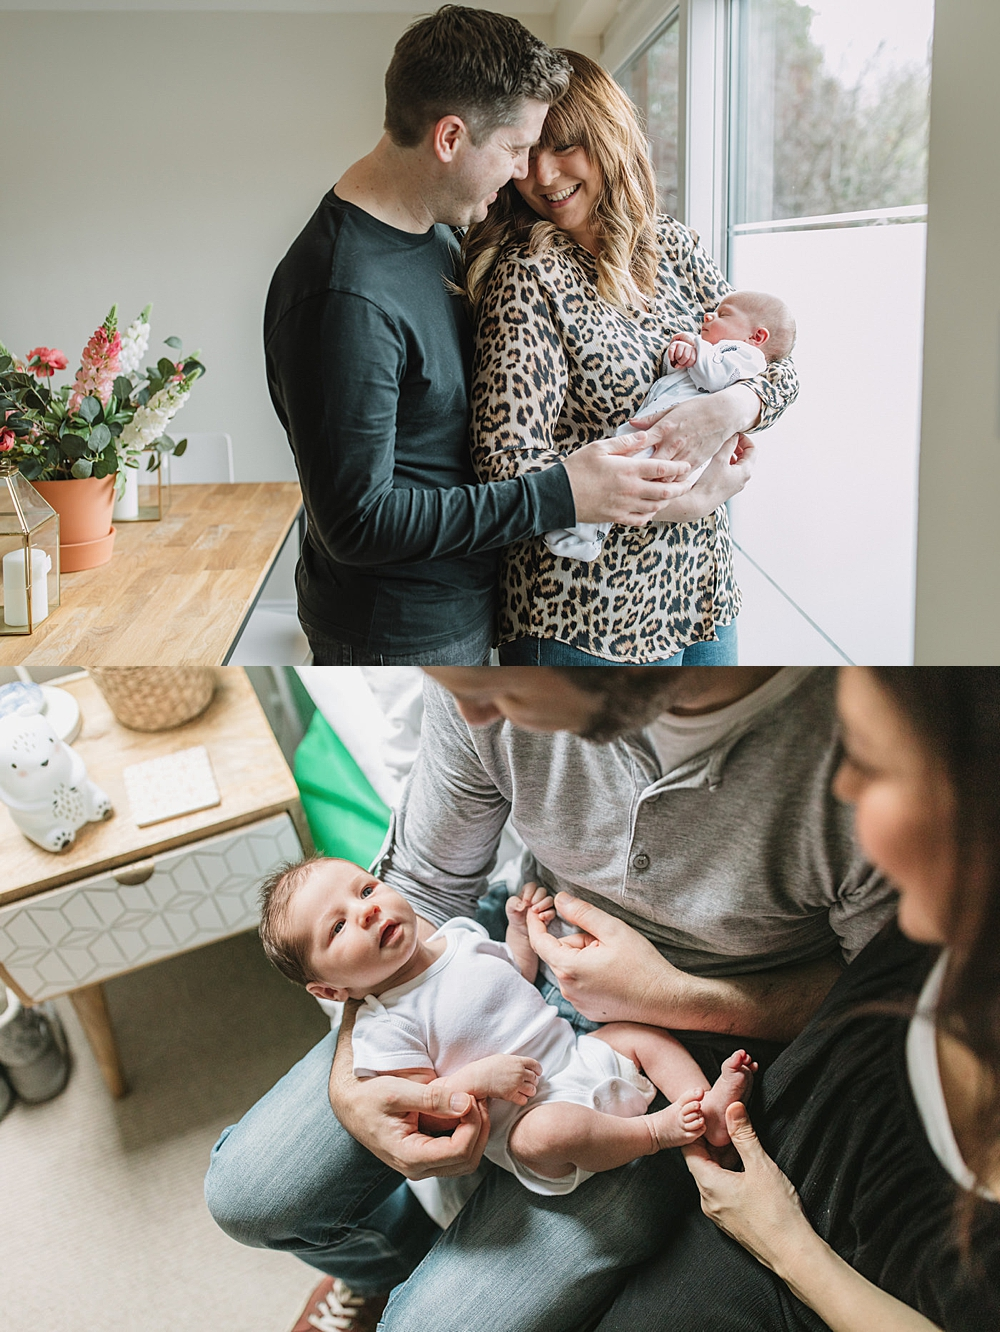 Babies,Lifestyle Newborn photography Glasgow,The Gibsons,baby led newborn photography glasgow,baby photos glasgow,creative family photography glasgow,family photos,glasgow baby and family photographers,lifestyle baby photography,